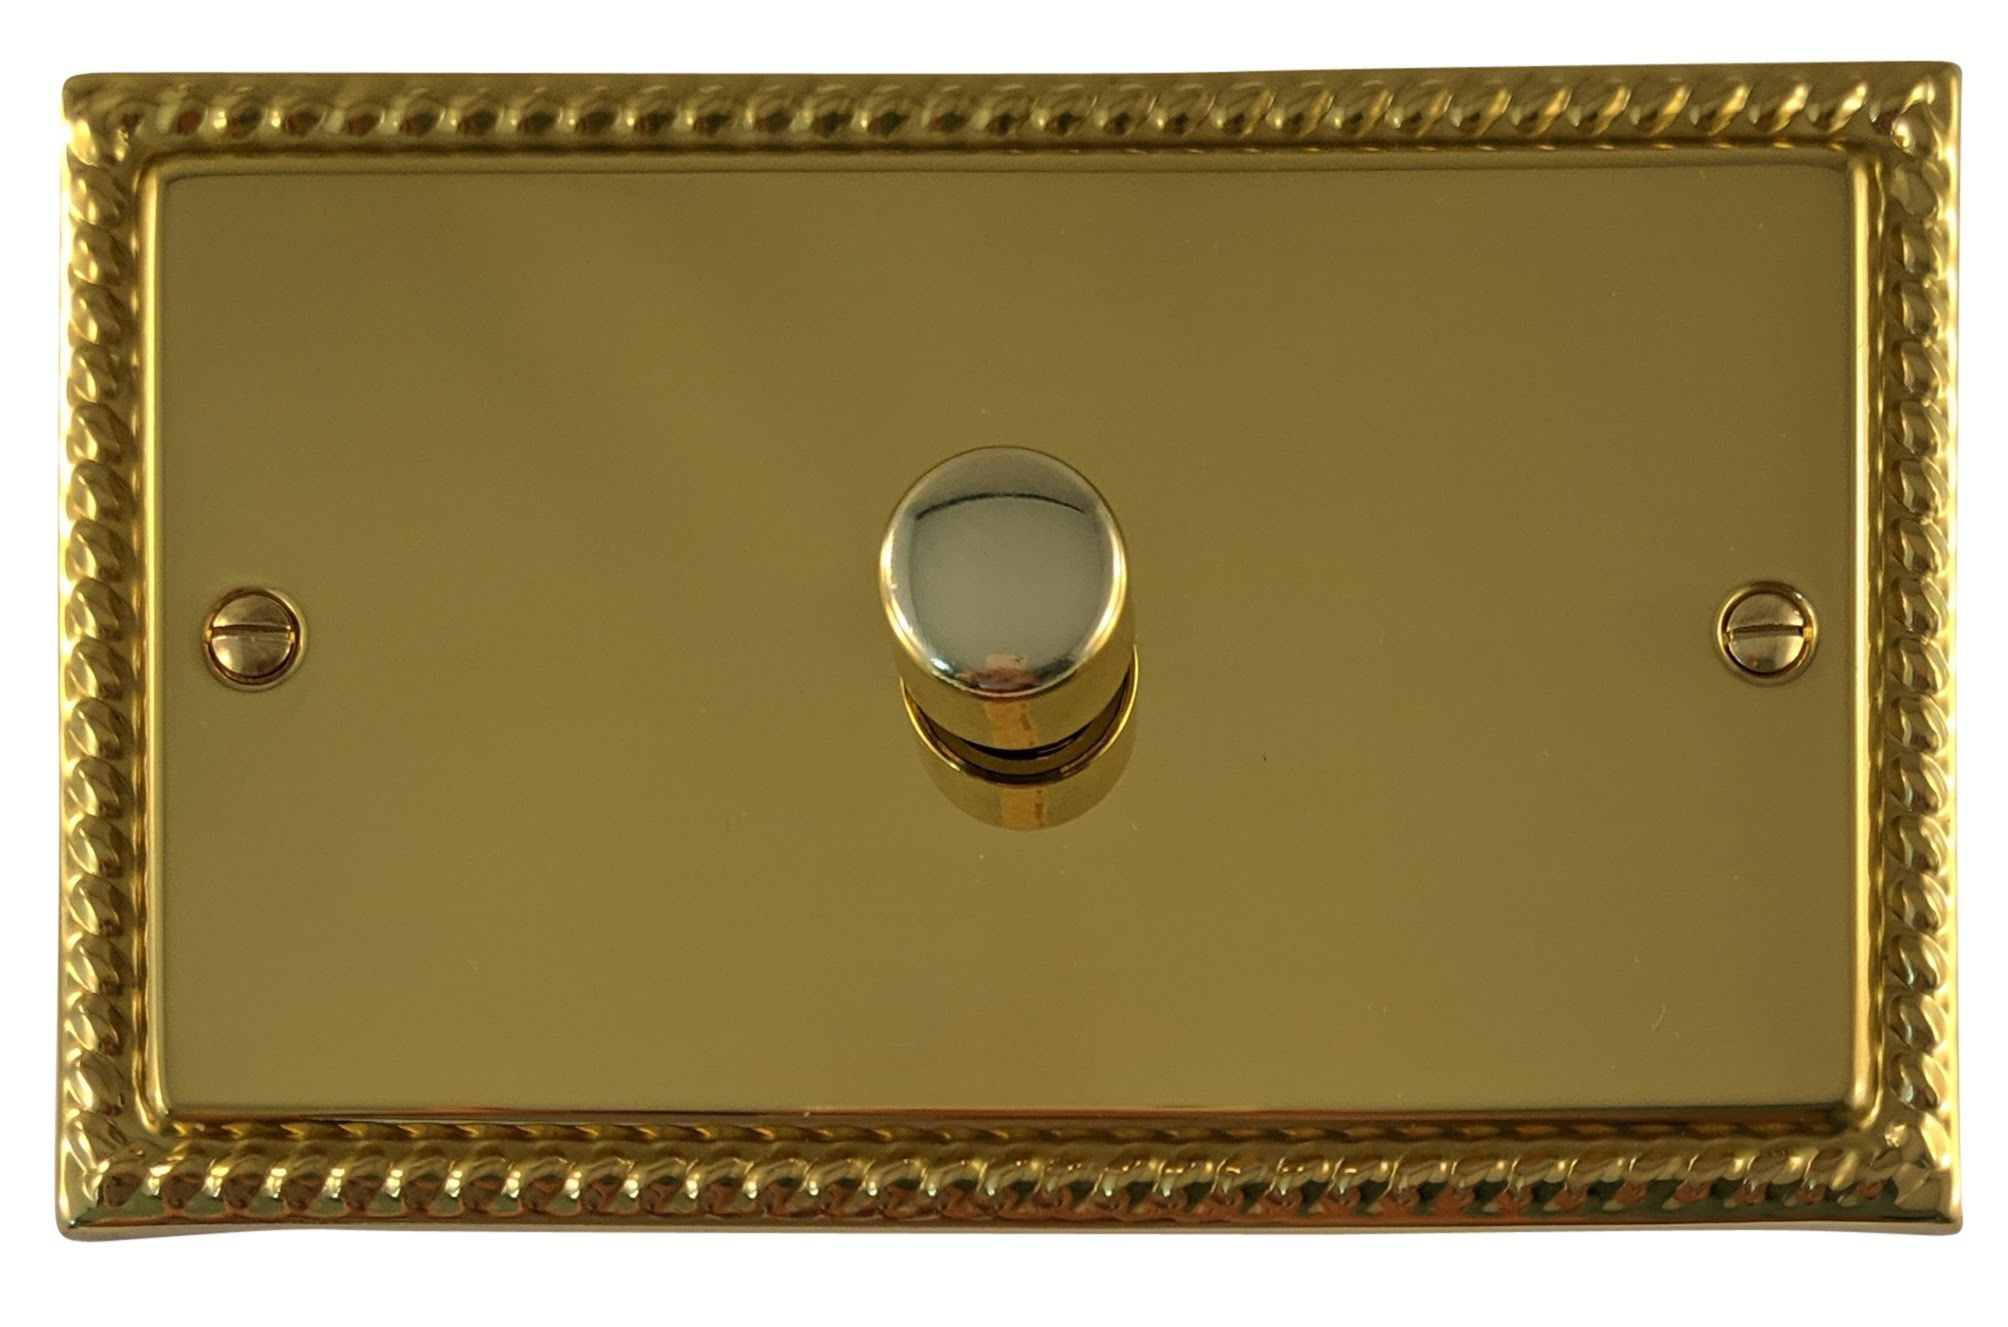 G&H MB16 Monarch Roped Polished Brass 1 Gang 1 or 2 Way 700W Dimmer Switch Double Plate